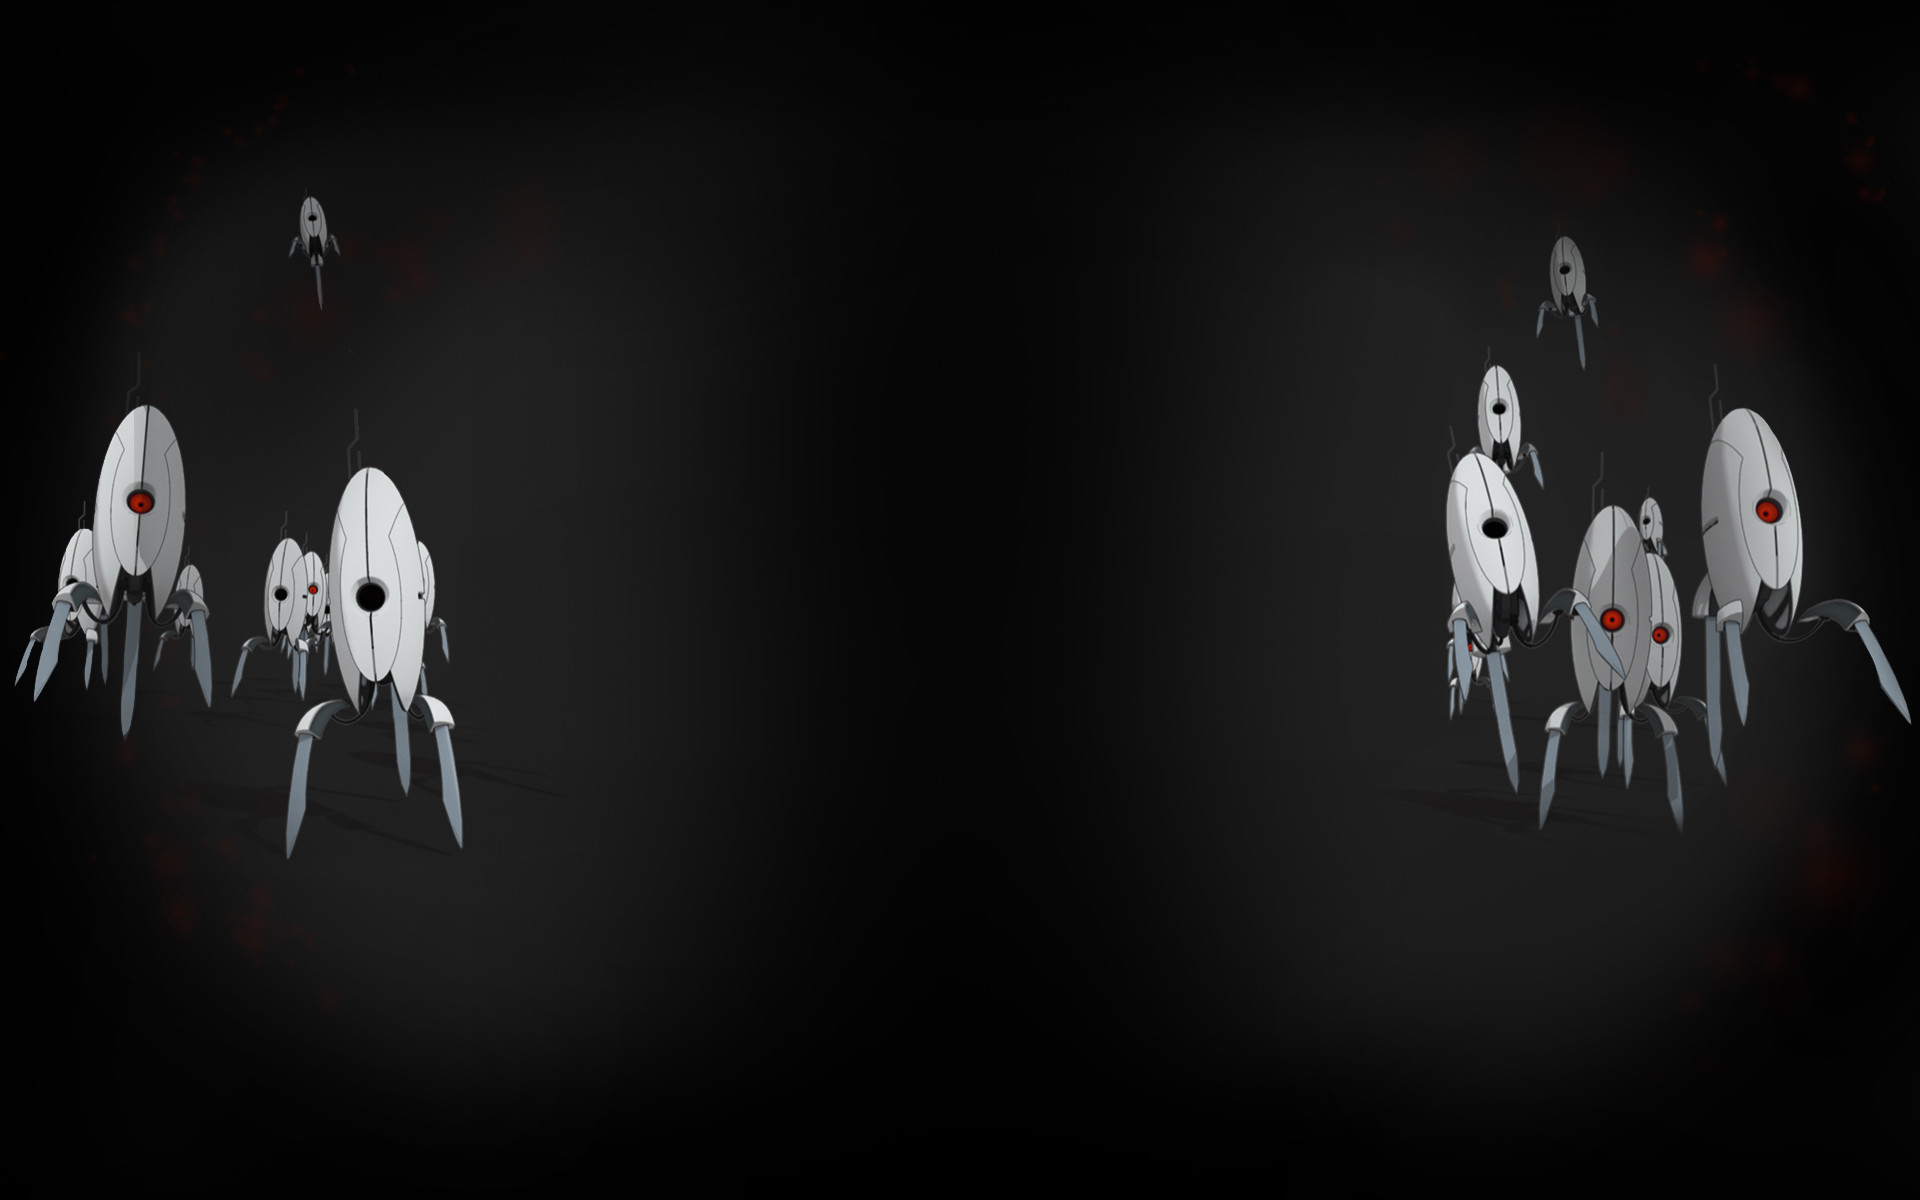 1920x1200 Portal 2 Profile Background. View Full Size